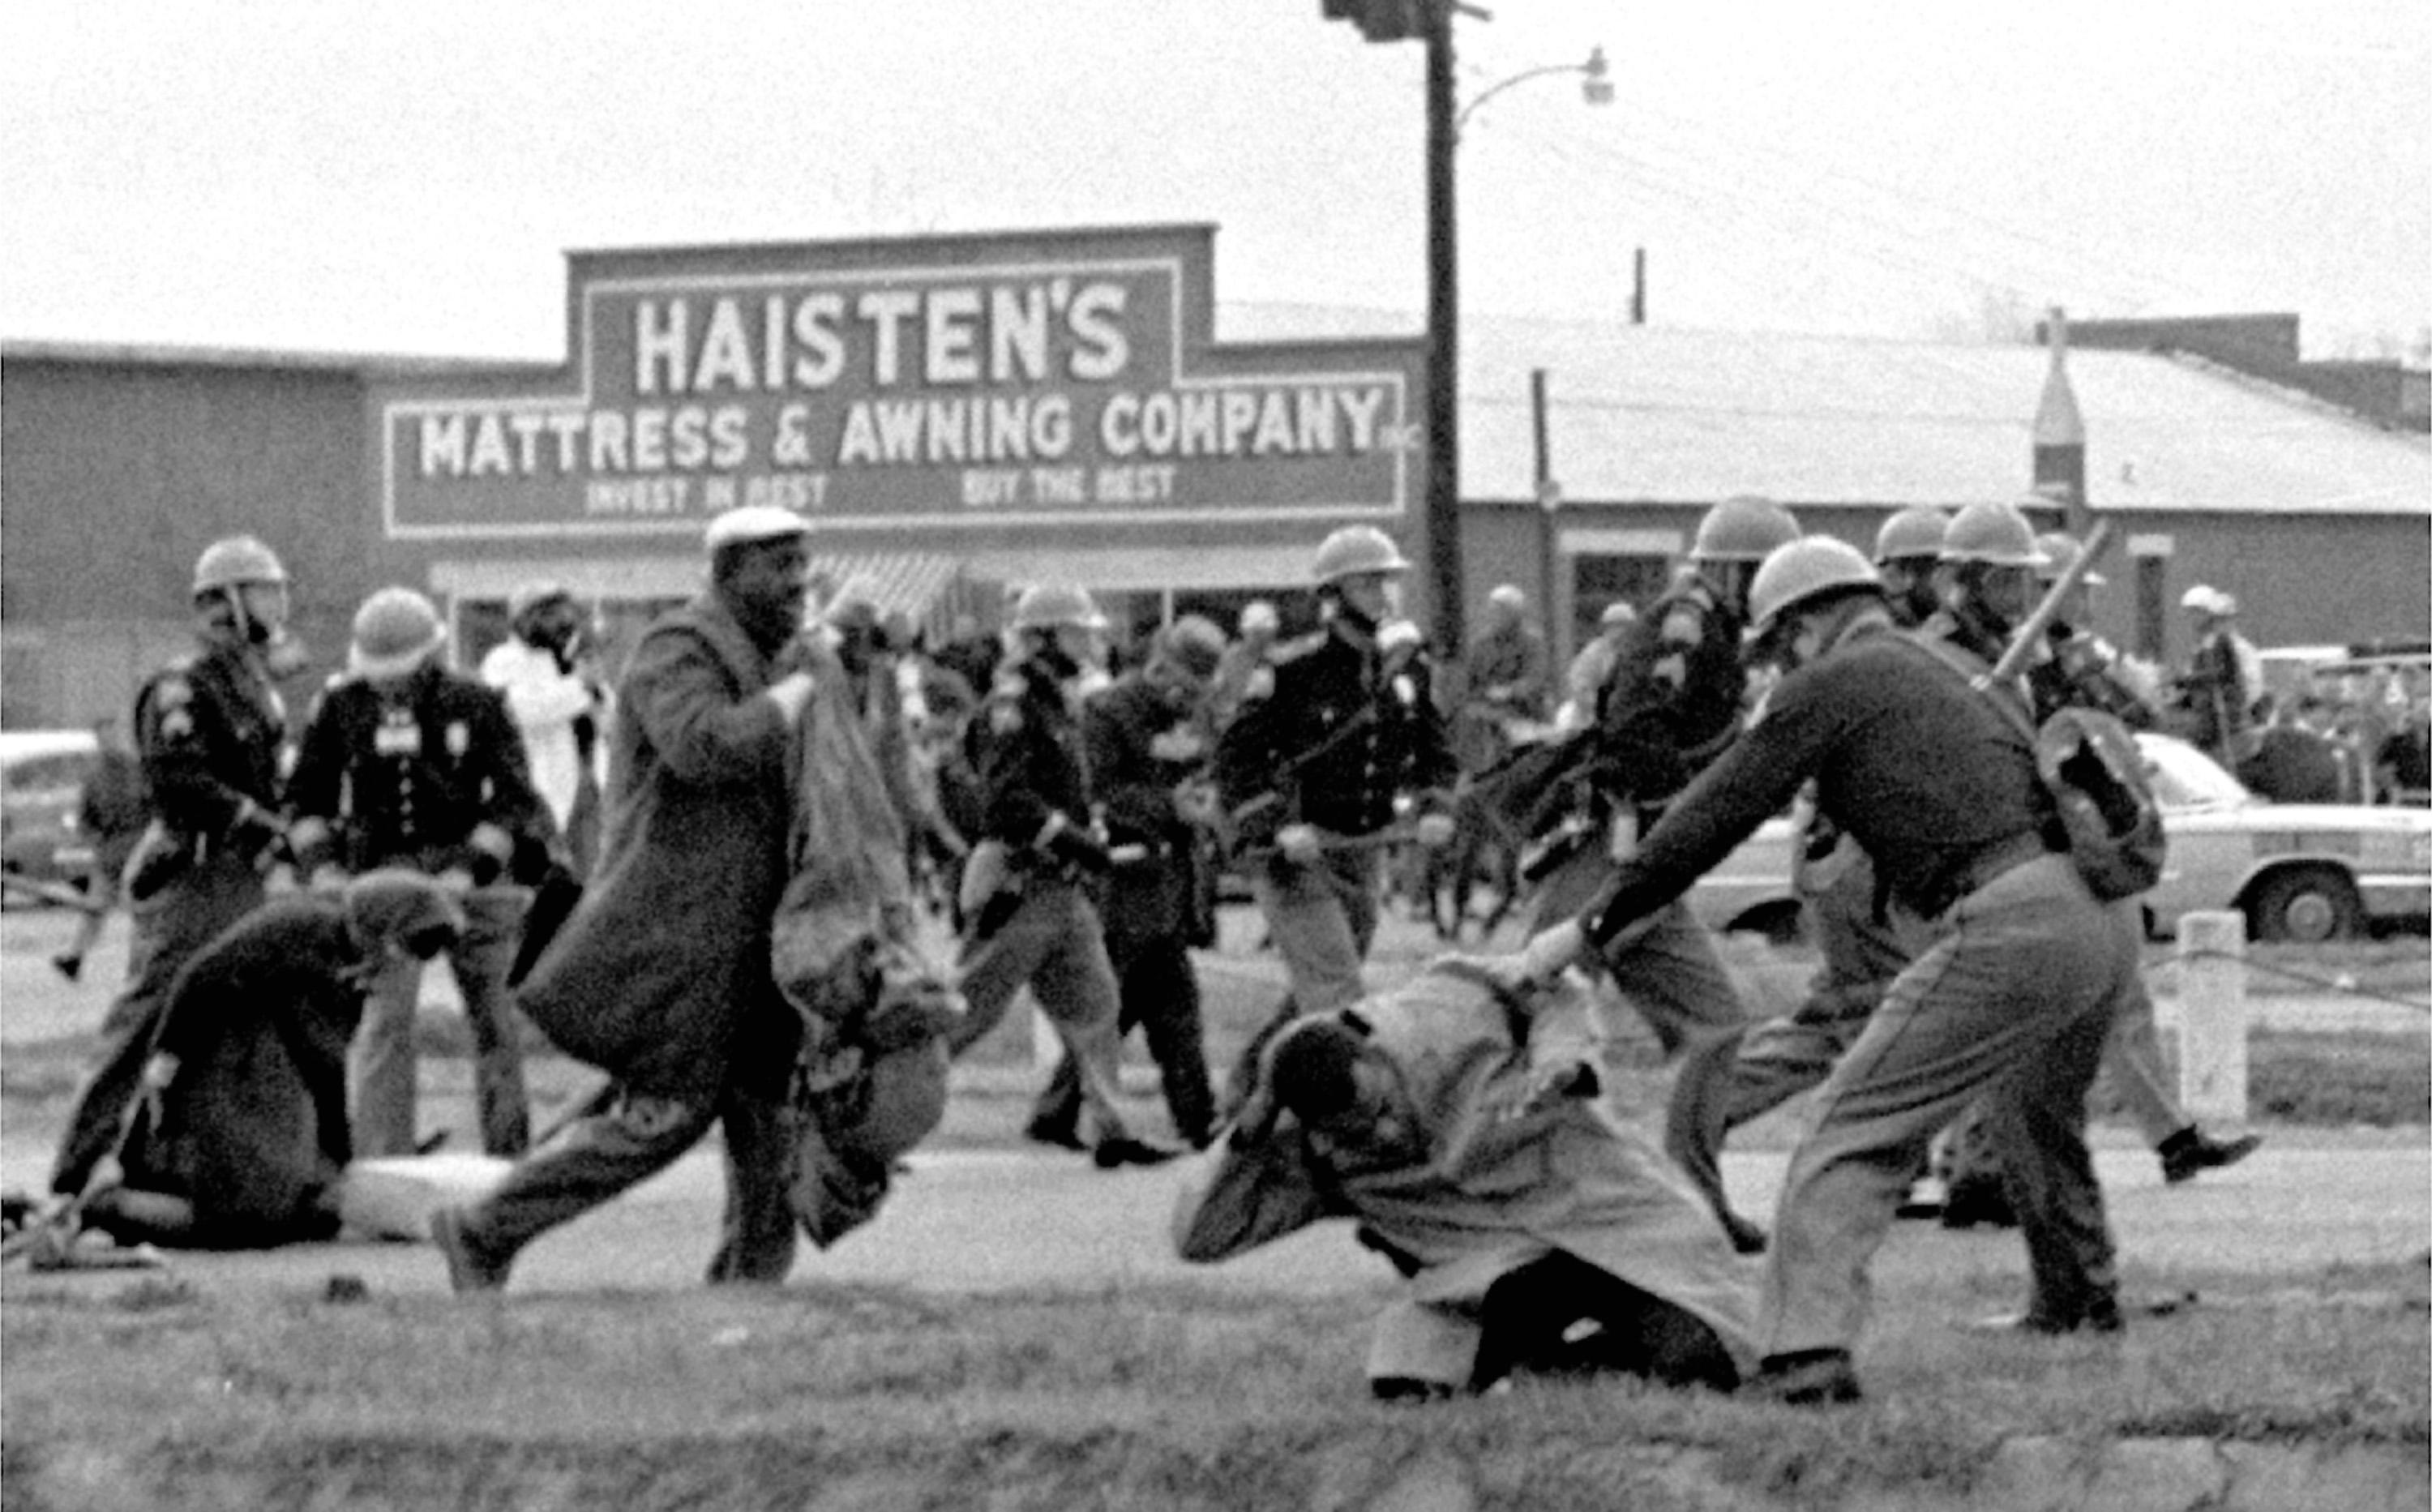 bloody sunday what really happened essay Bloody sunday essay sample on a regular day in ireland on january 30th, 1972 in the bogside area of derry, northern ireland everything was turned upside down during a northern ireland civil rights movement.